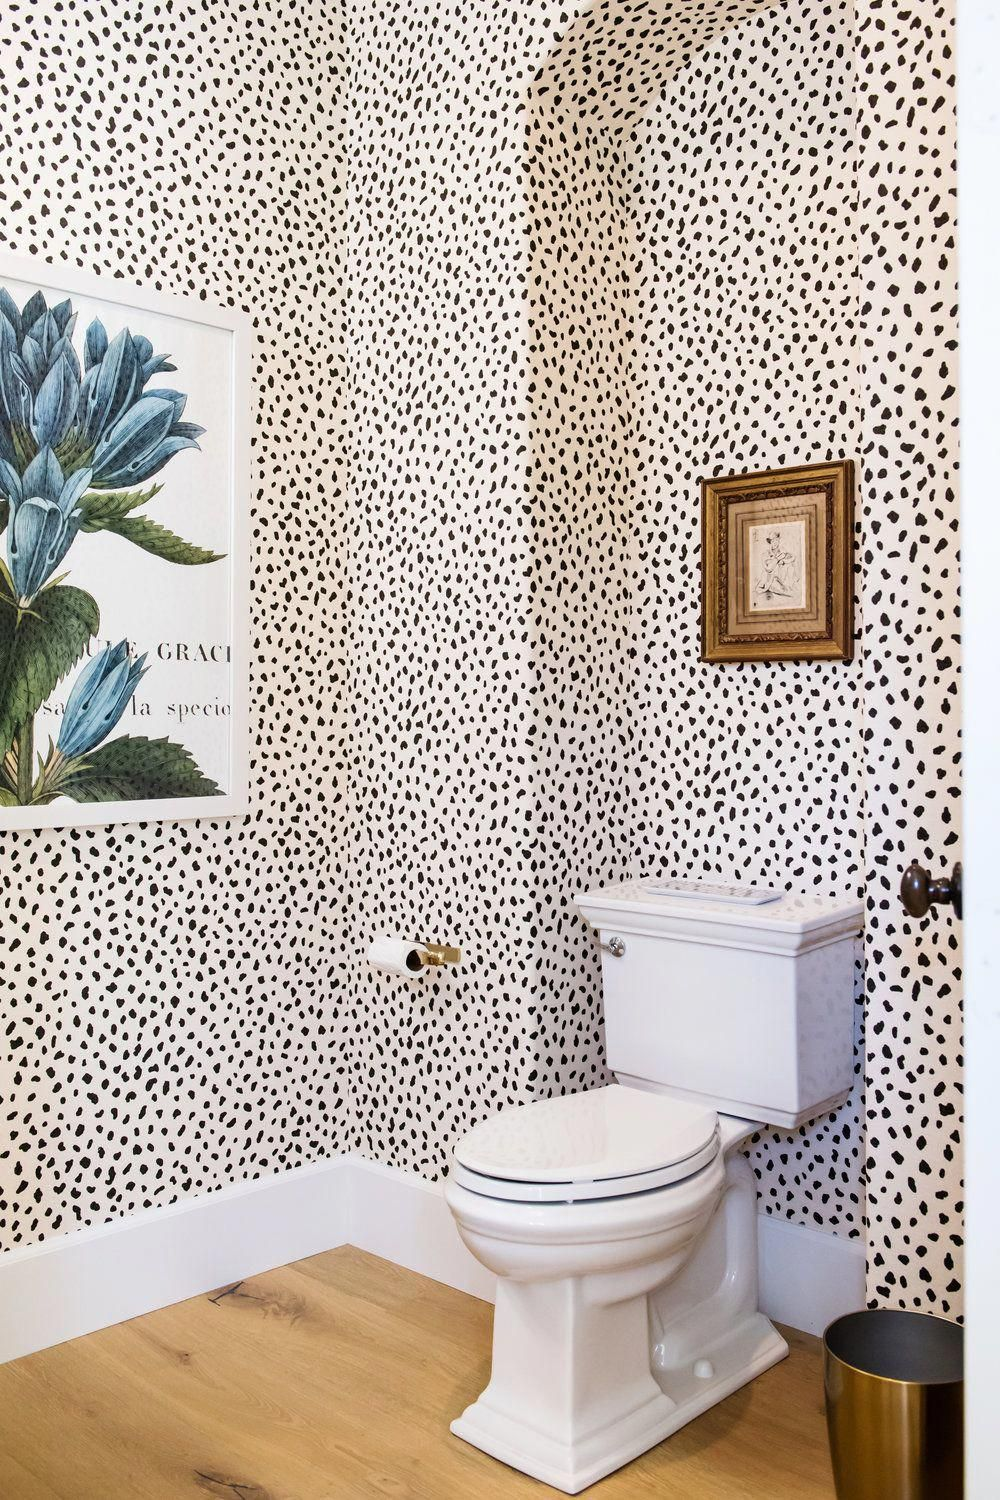 You Wish To Ensure That The Color And Texture Of The Sink Vanity Countertop Matches Your Flooring And The Fixtures In Your Shower Bathroom Wallpaper Traditional Bathroom Powder Room Wallpaper